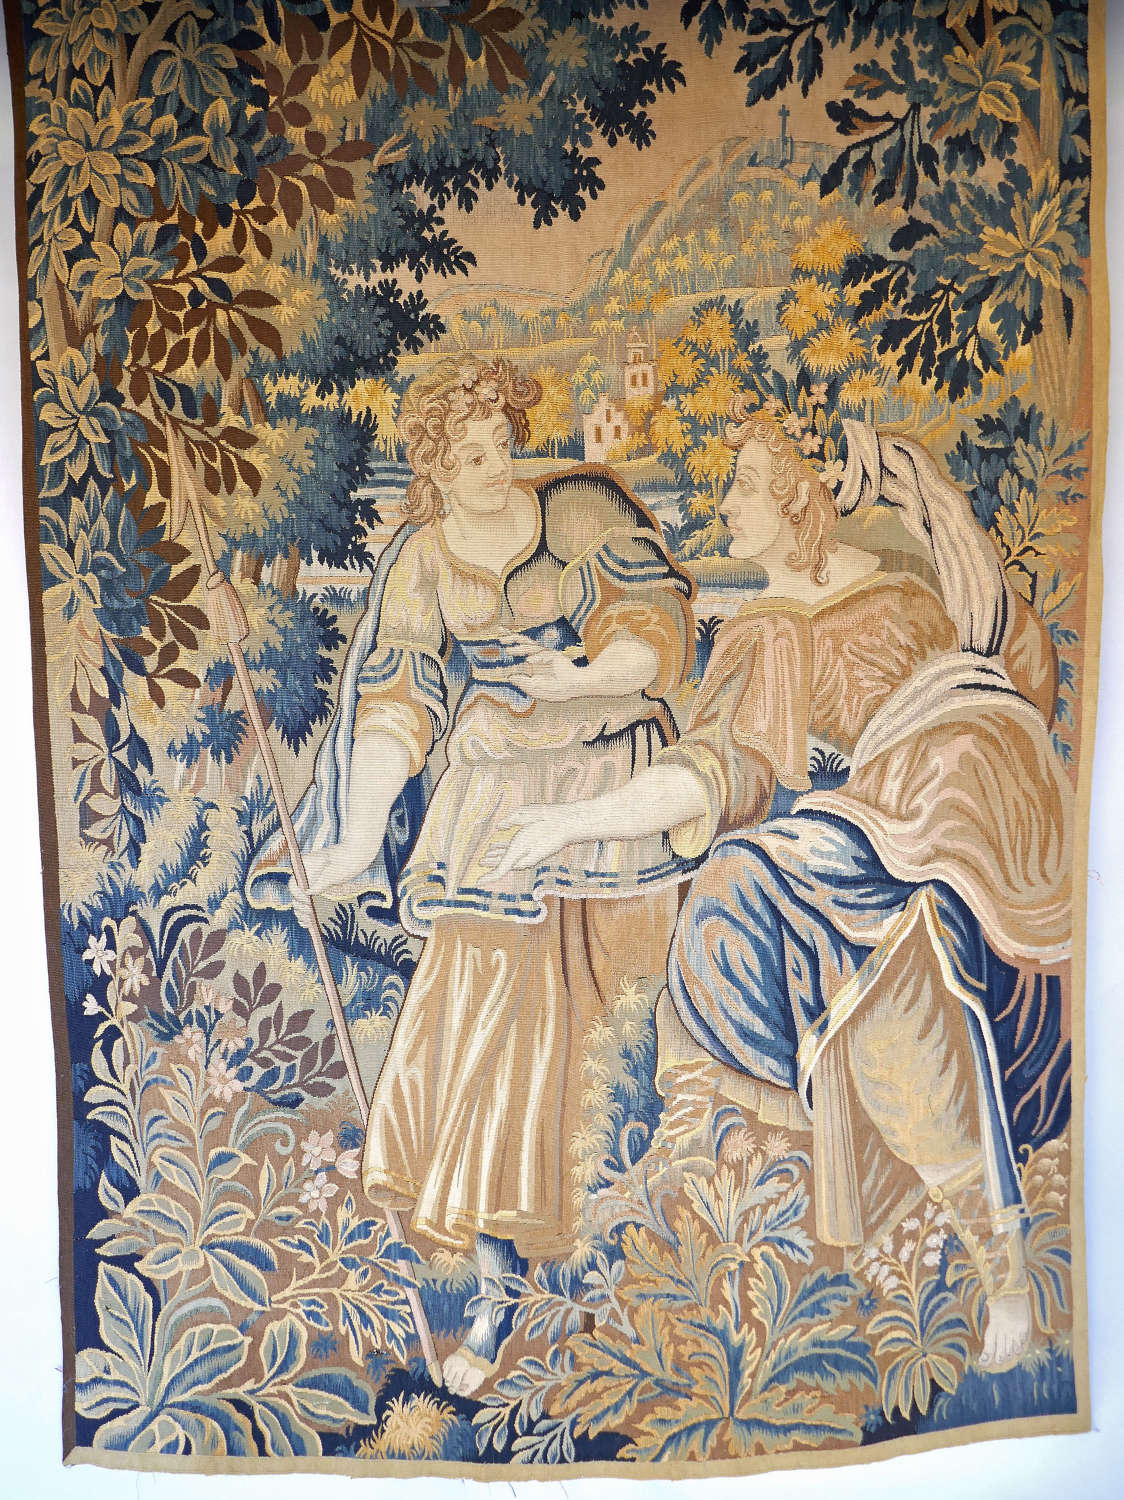 Antique Textiles Late 18thc French Wall Hanging Tapestry. C1780-C1800